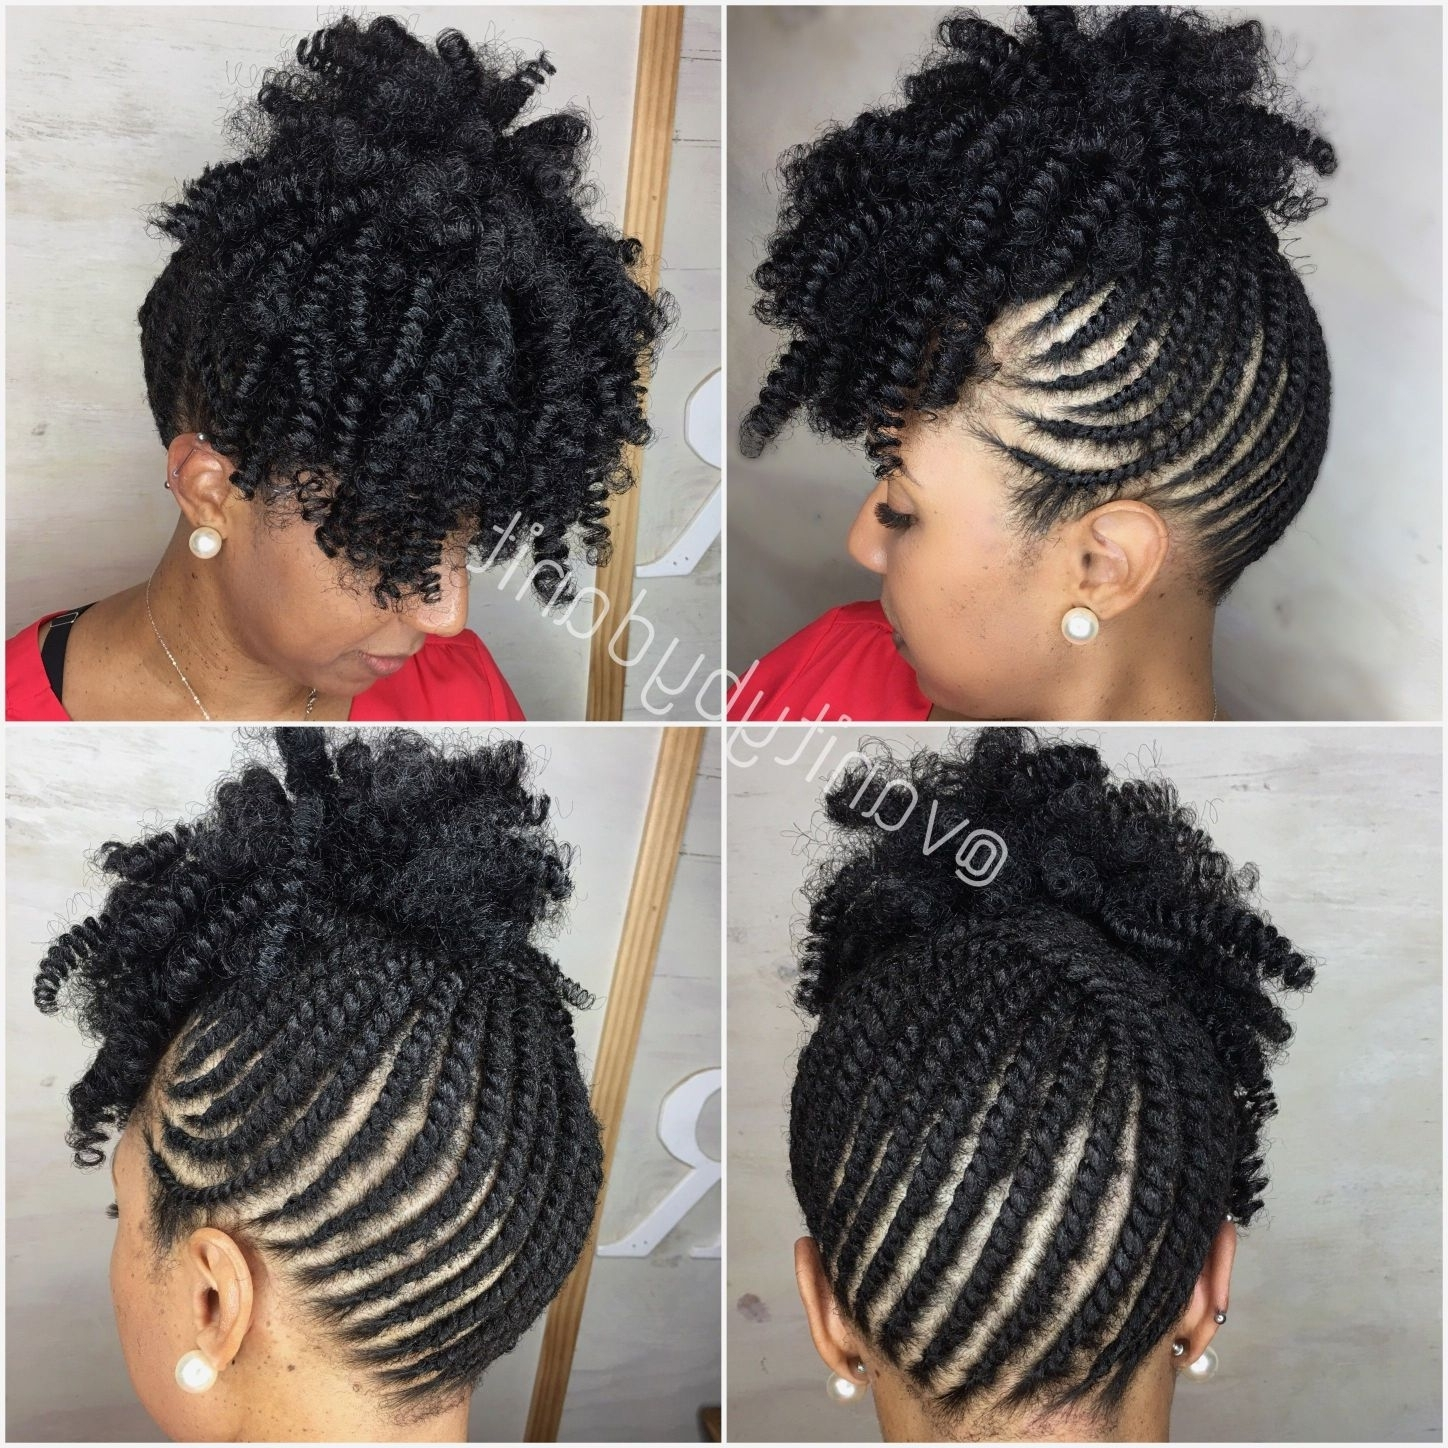 Most Recent Braided Hairstyles On Natural Hair For French Braid Hairstyles Natural Hair Beautiful Braided For (View 11 of 15)